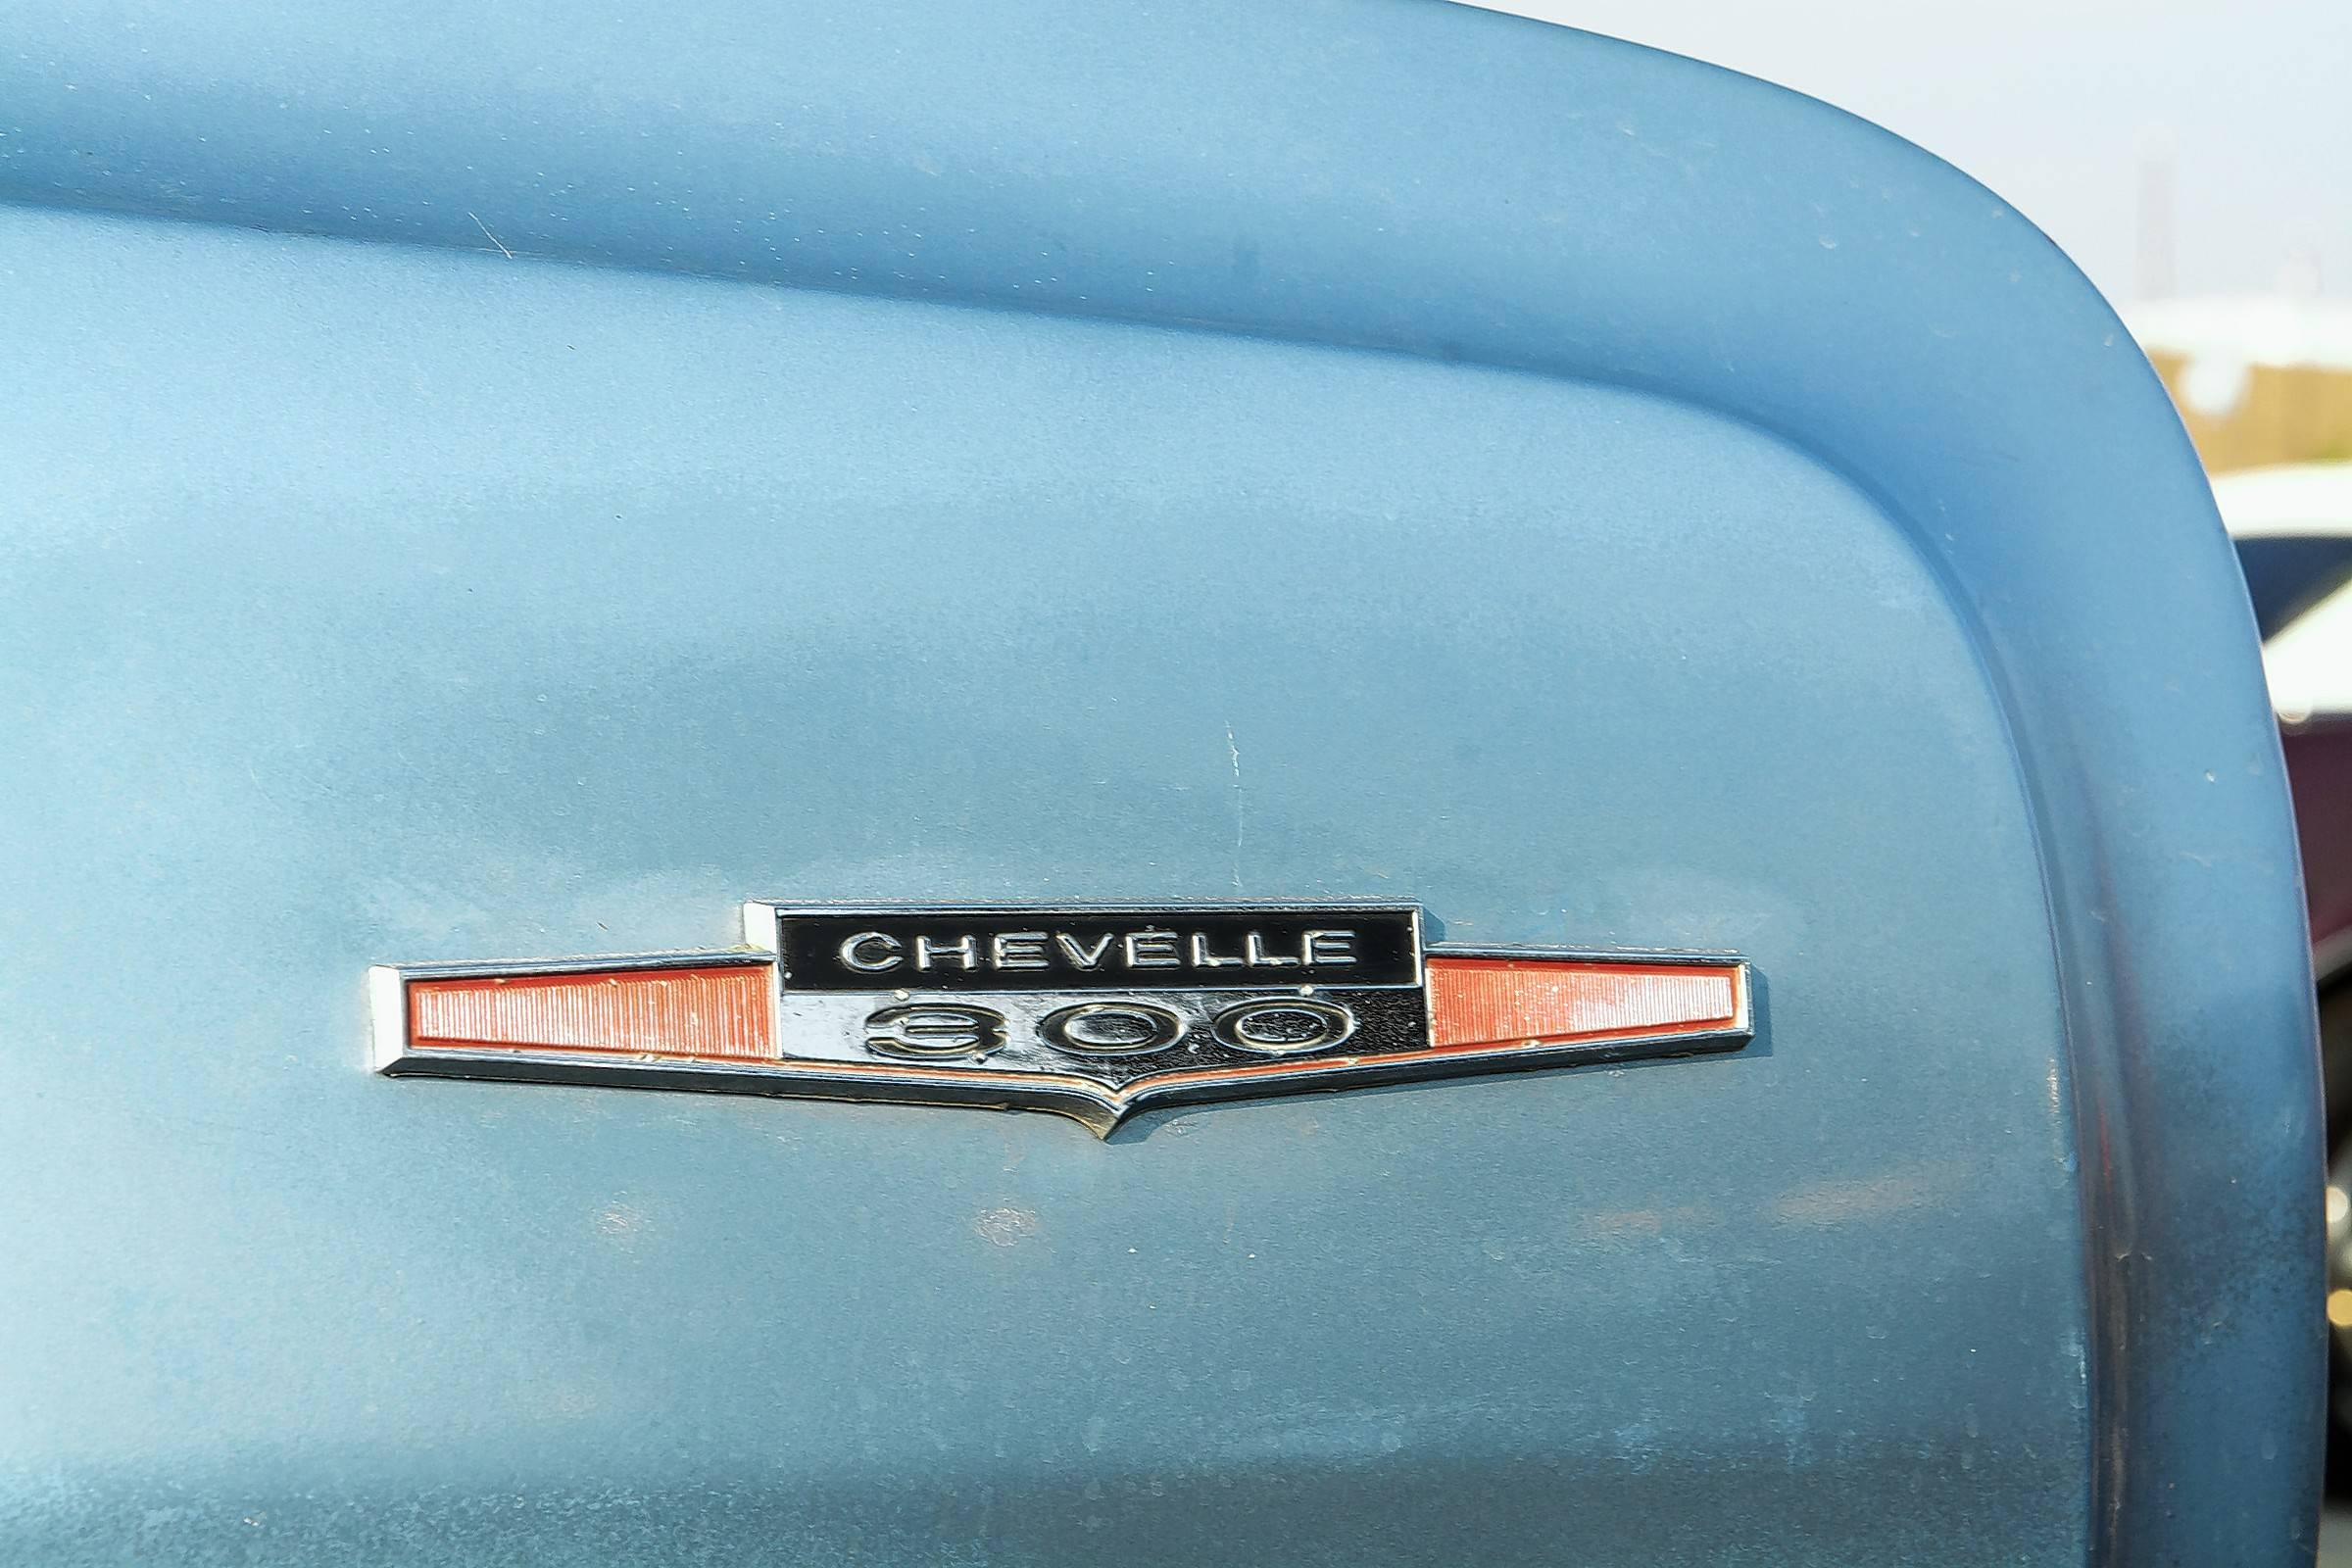 The 300 series was the base model for the 1965 Chevrolet Chevelle. They also could be ordered in a Super Sport trim.